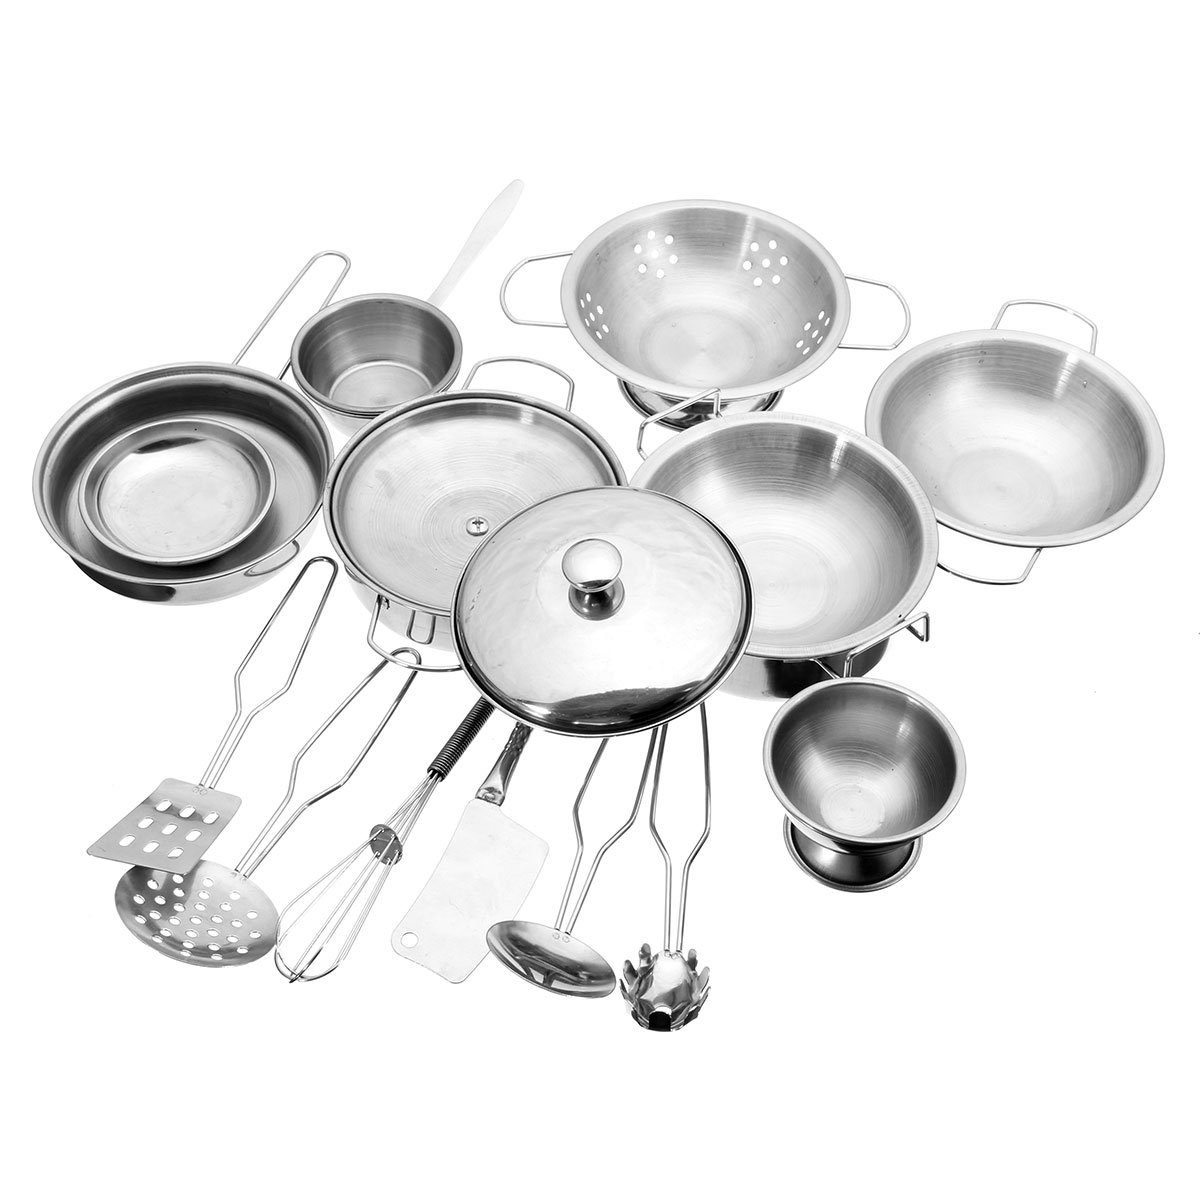 New 16PCS Stainless Steel Pan Pot Dish Kitchenware Kitchen Unit Toy Kids Role Play Toys By Letbo LetBG